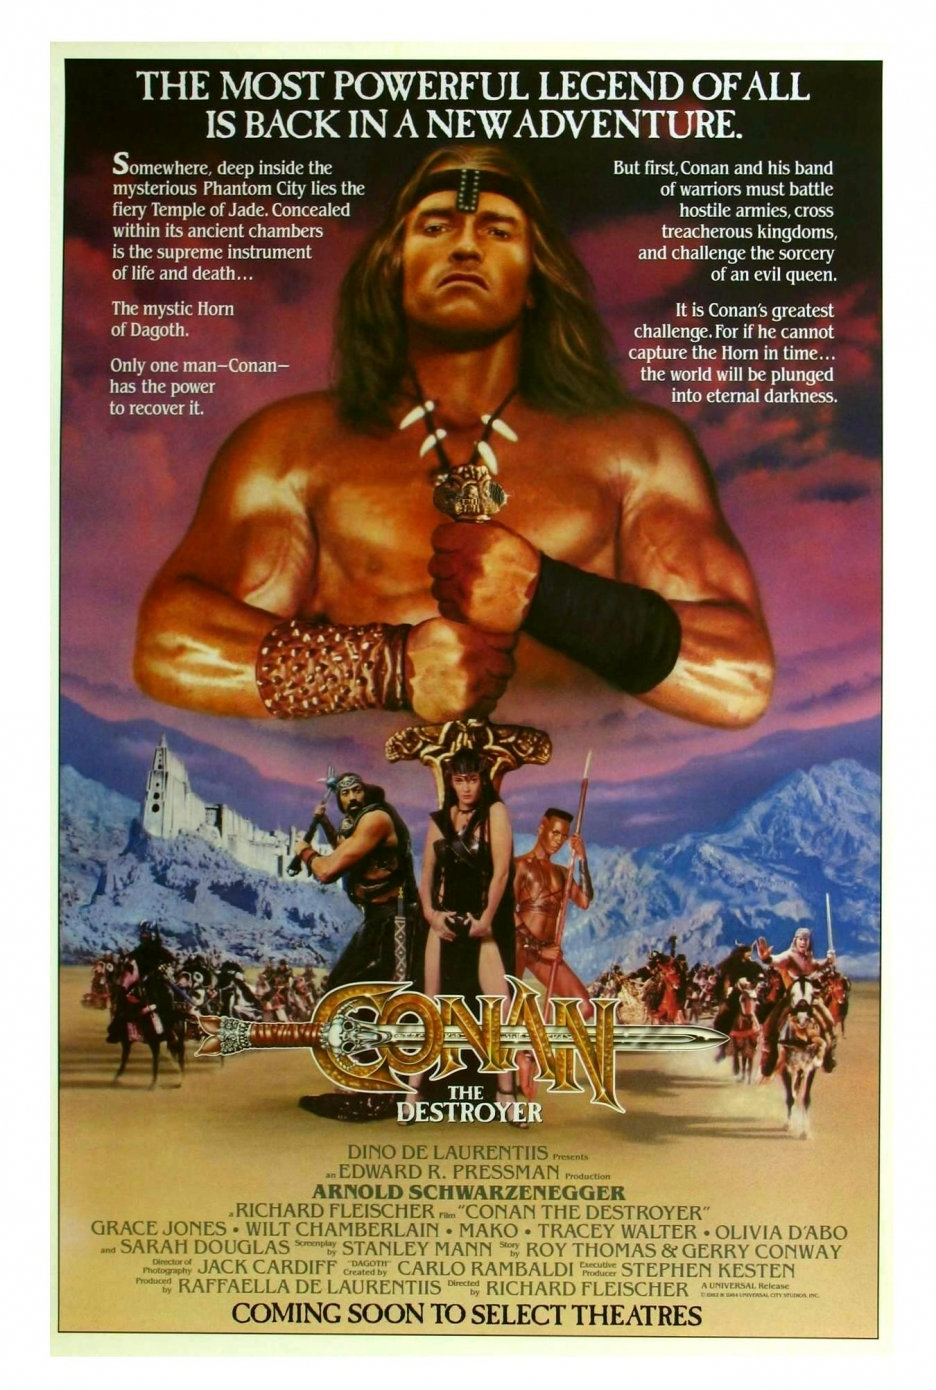 conan_the_destroyer_poster_1984_02.jpg